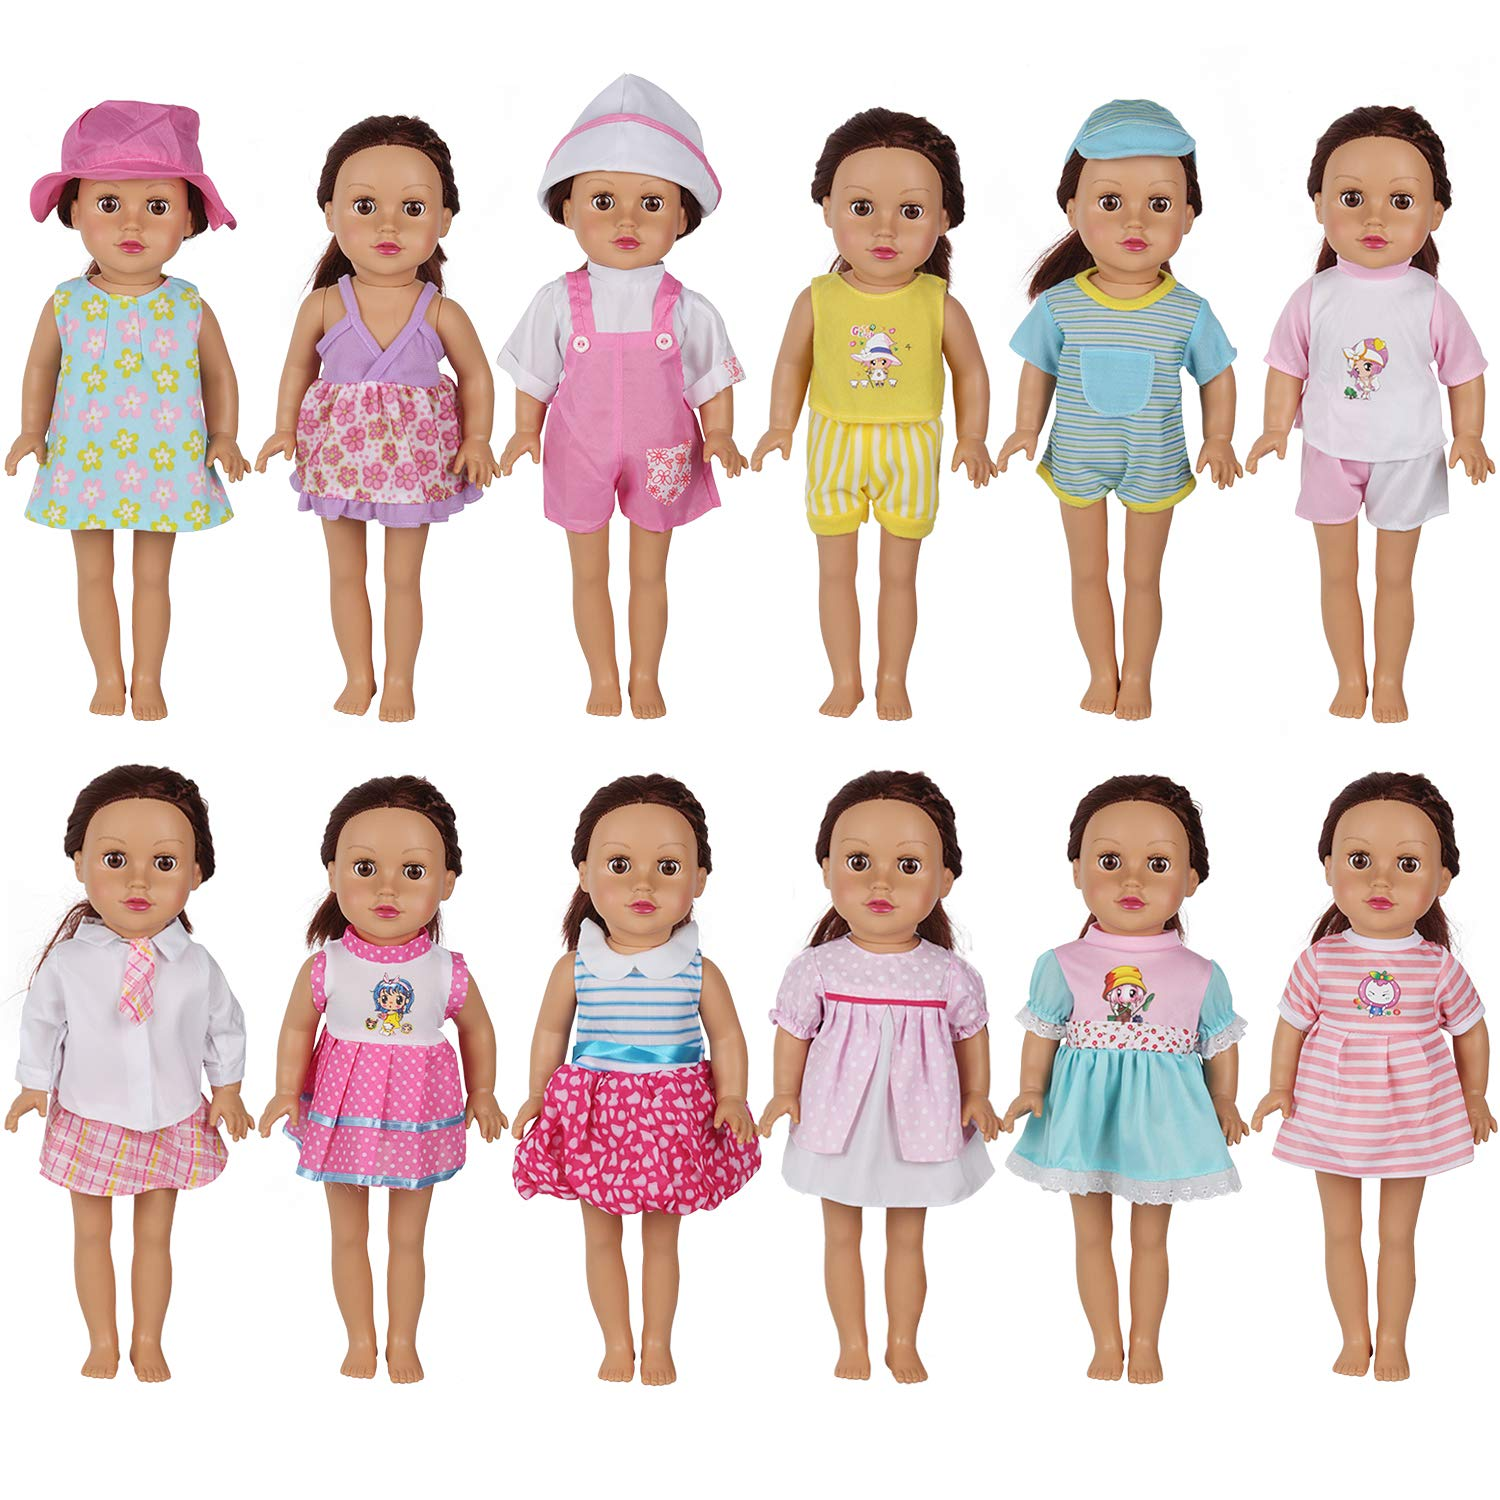 c6d576aa9173d Huang Cheng Toys Set of 12 Handmade Lovely Baby Doll Clothes Dress Outfits  Costumes ...